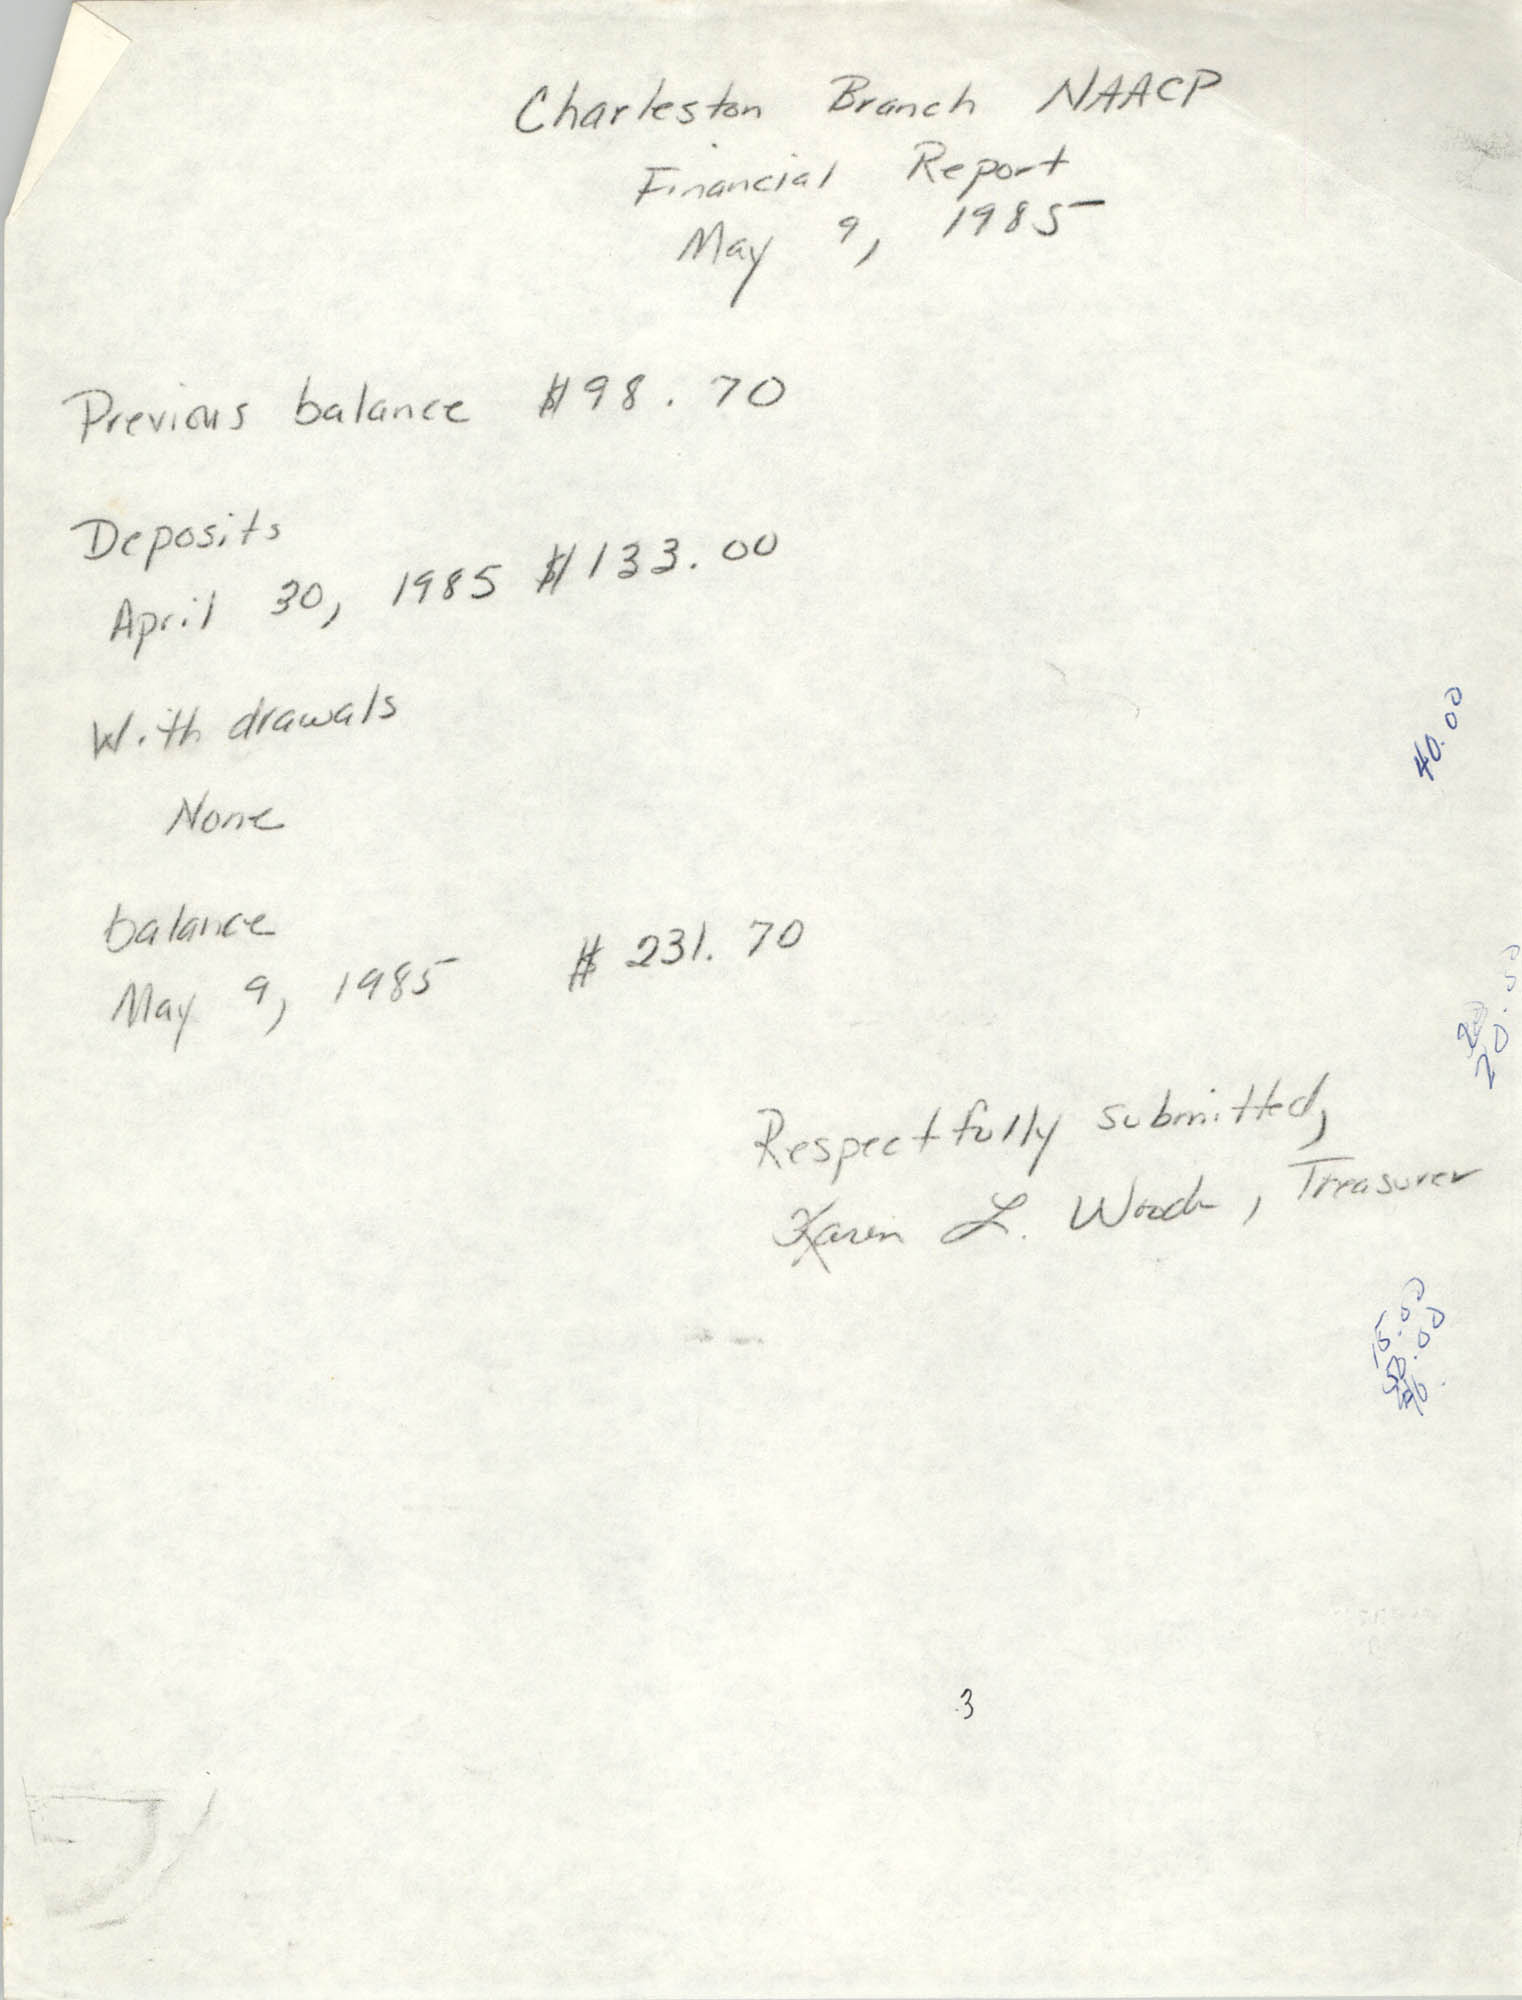 Charleston Branch of the NAACP Financial Report, May 9, 1985